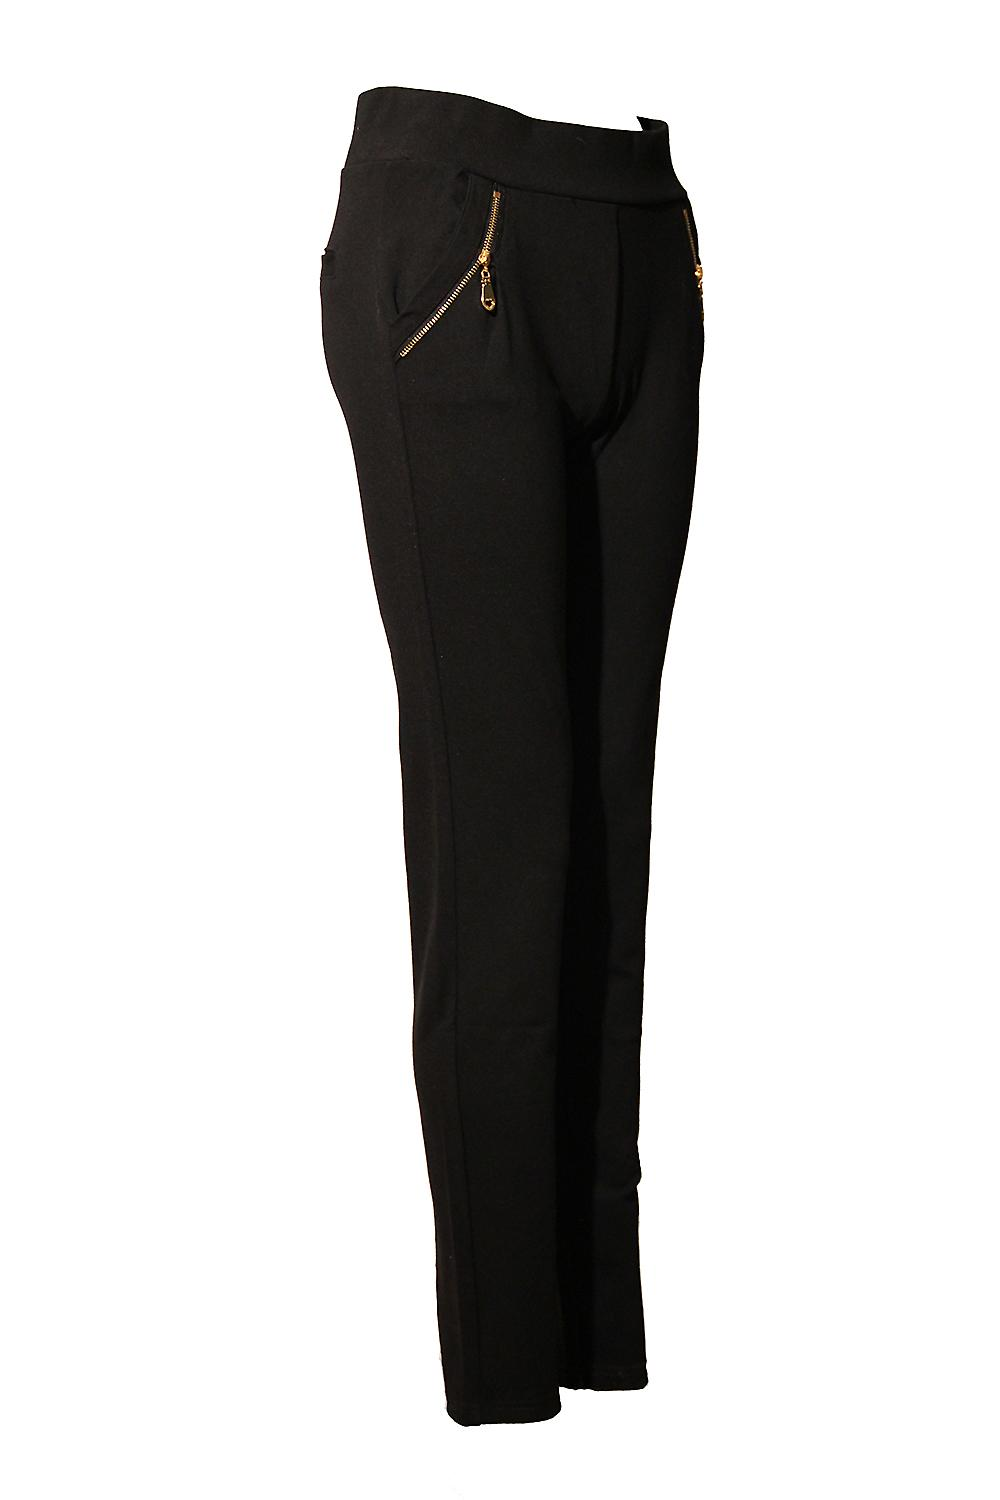 Waooh - Fashion - Stretch Trousers women